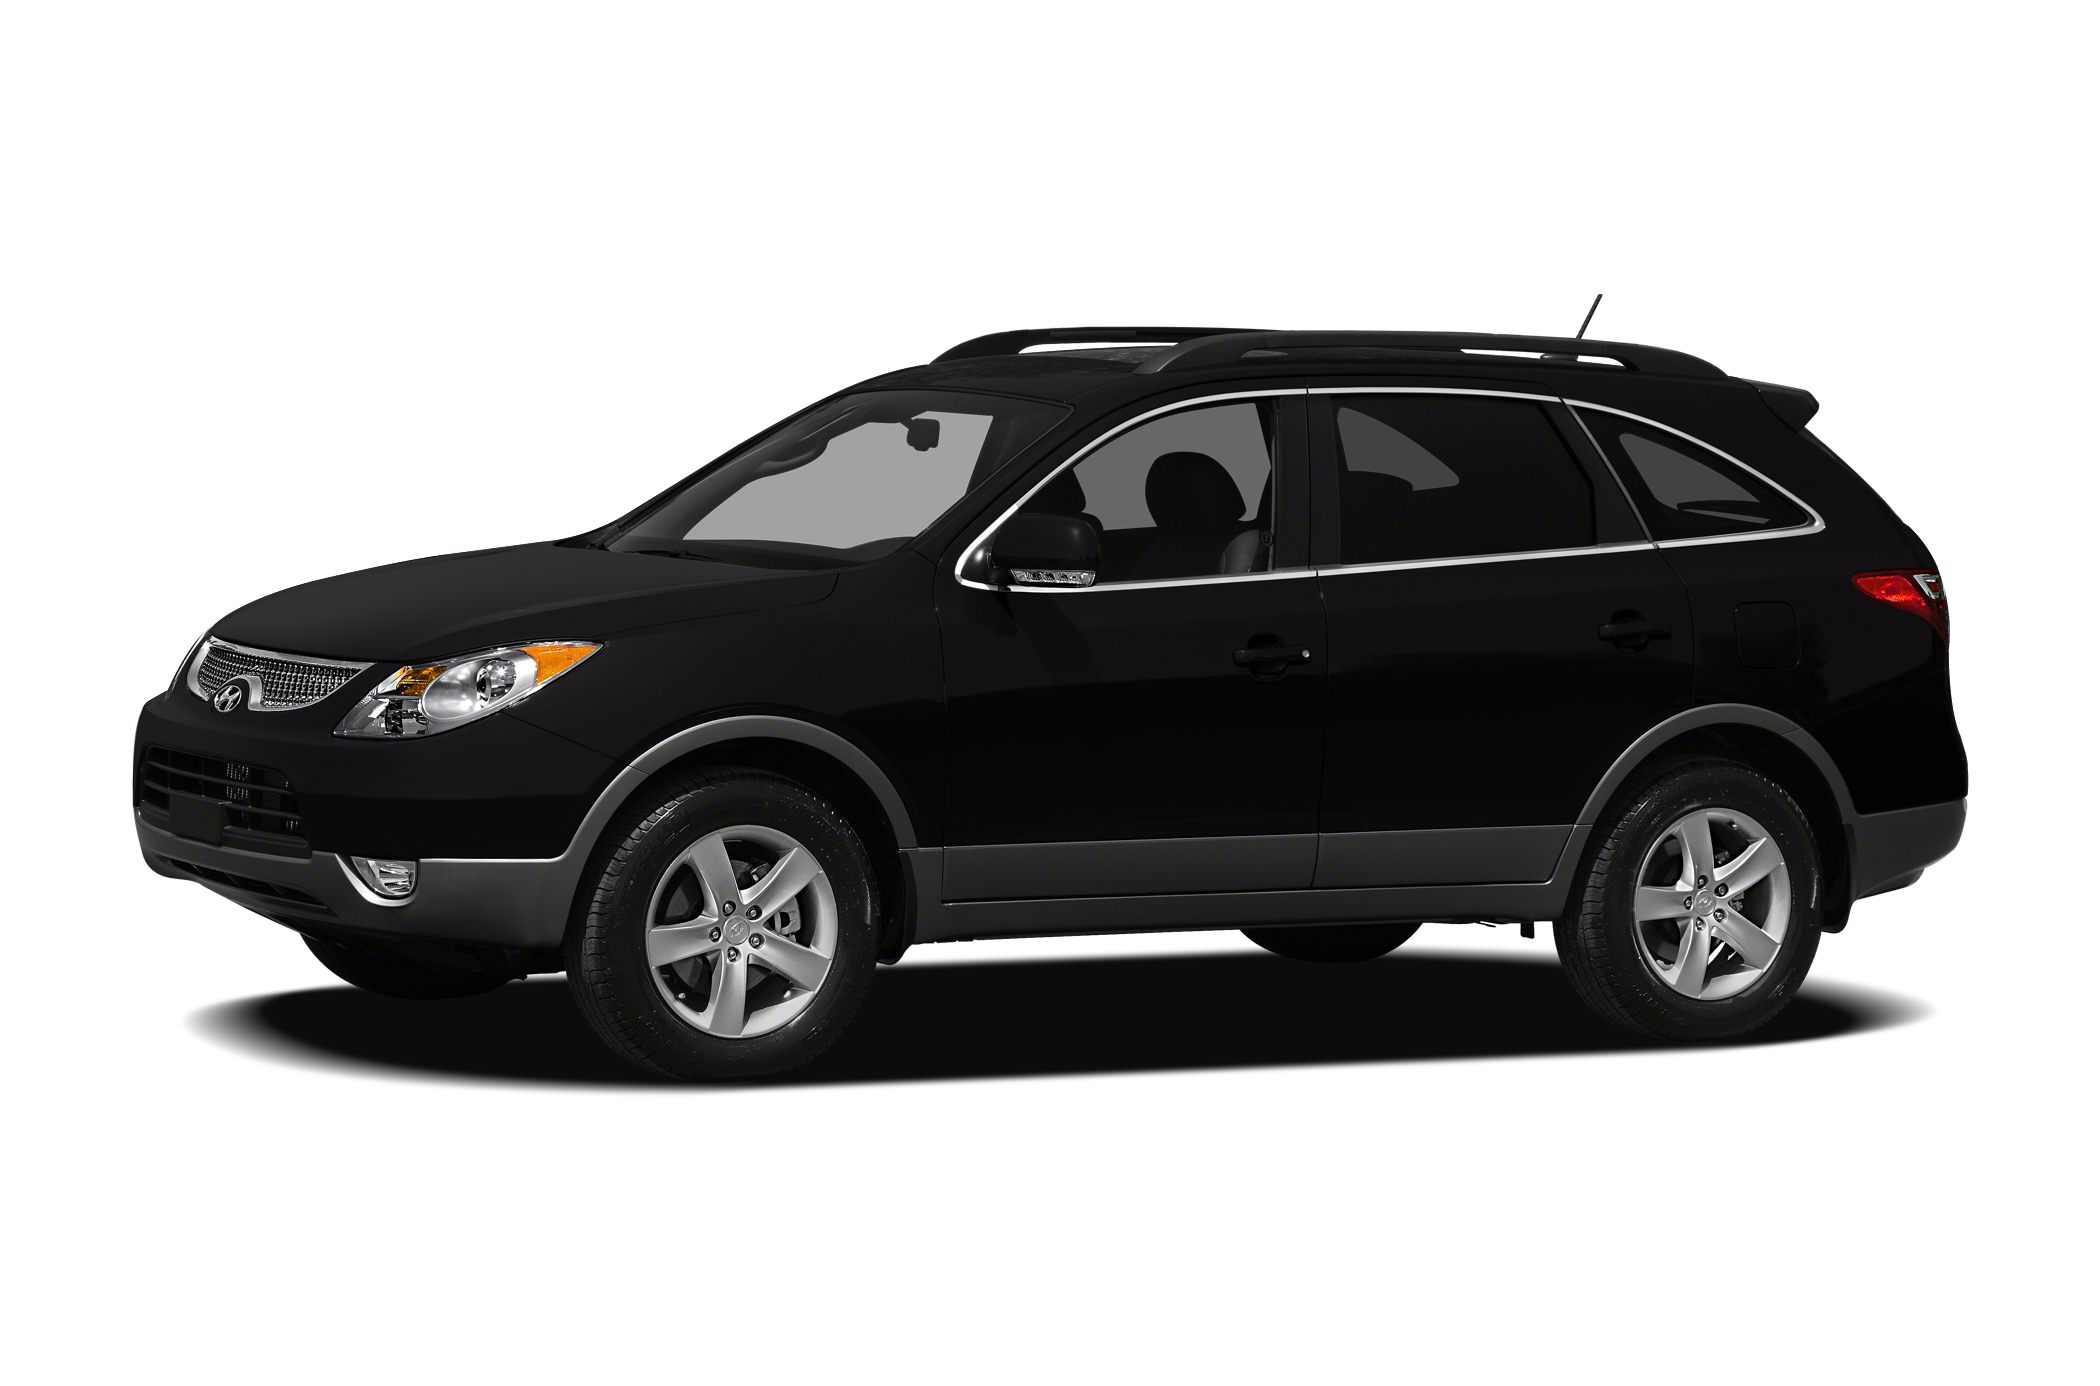 2012 Hyundai Veracruz Limited SUV for sale in Smyrna for $21,968 with 30,830 miles.